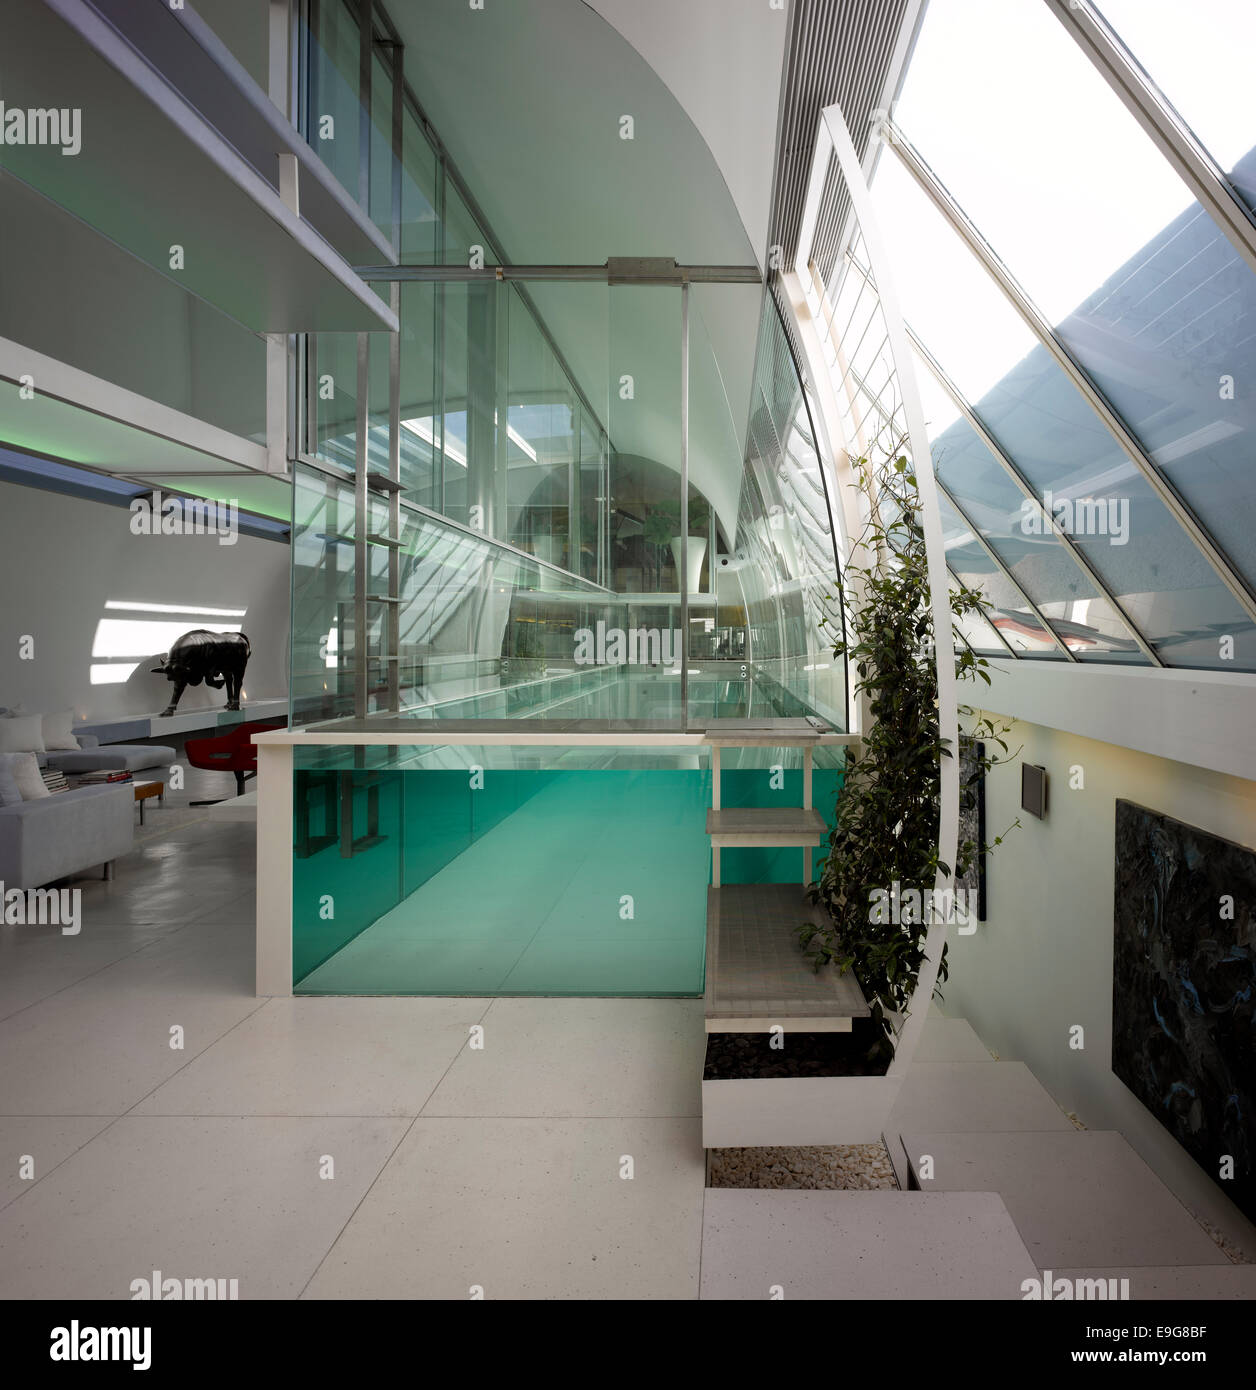 Steps up to custom made glass swimming pool in paxton - Houses with swimming pools in london ...